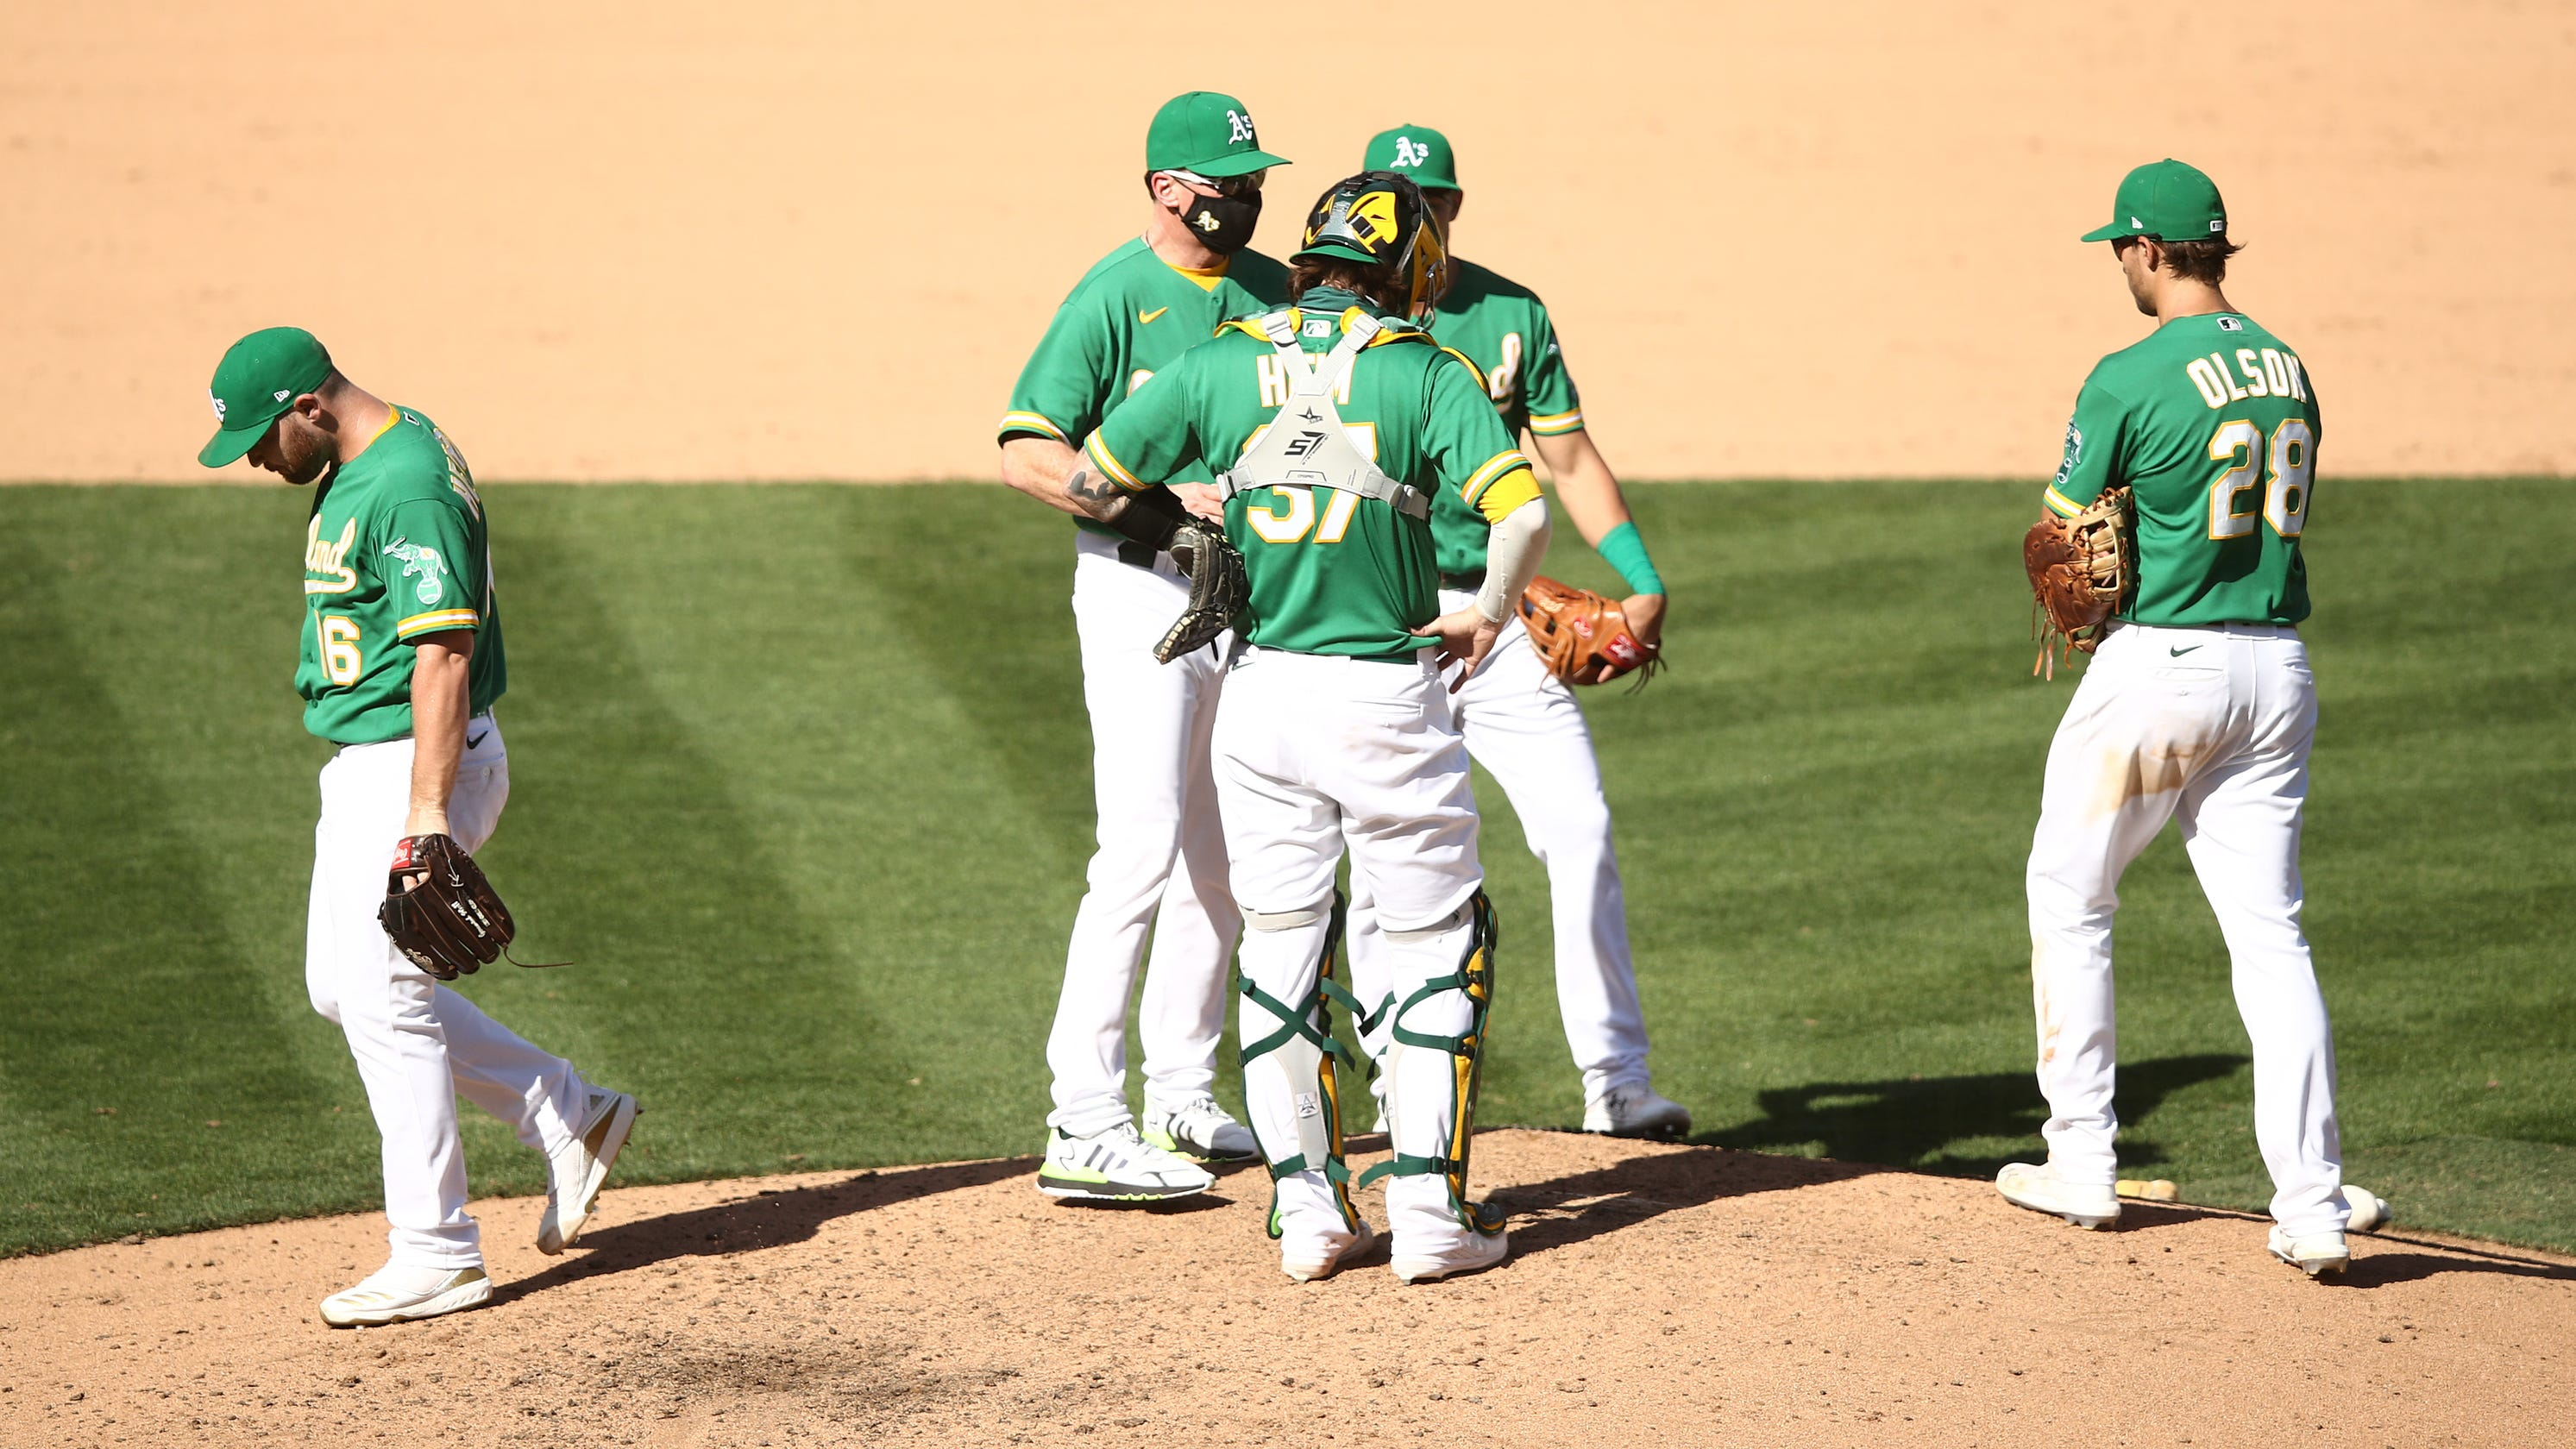 Athletics beat White Sox to force Game 3 – but will they regret burning closer Liam Hendriks?